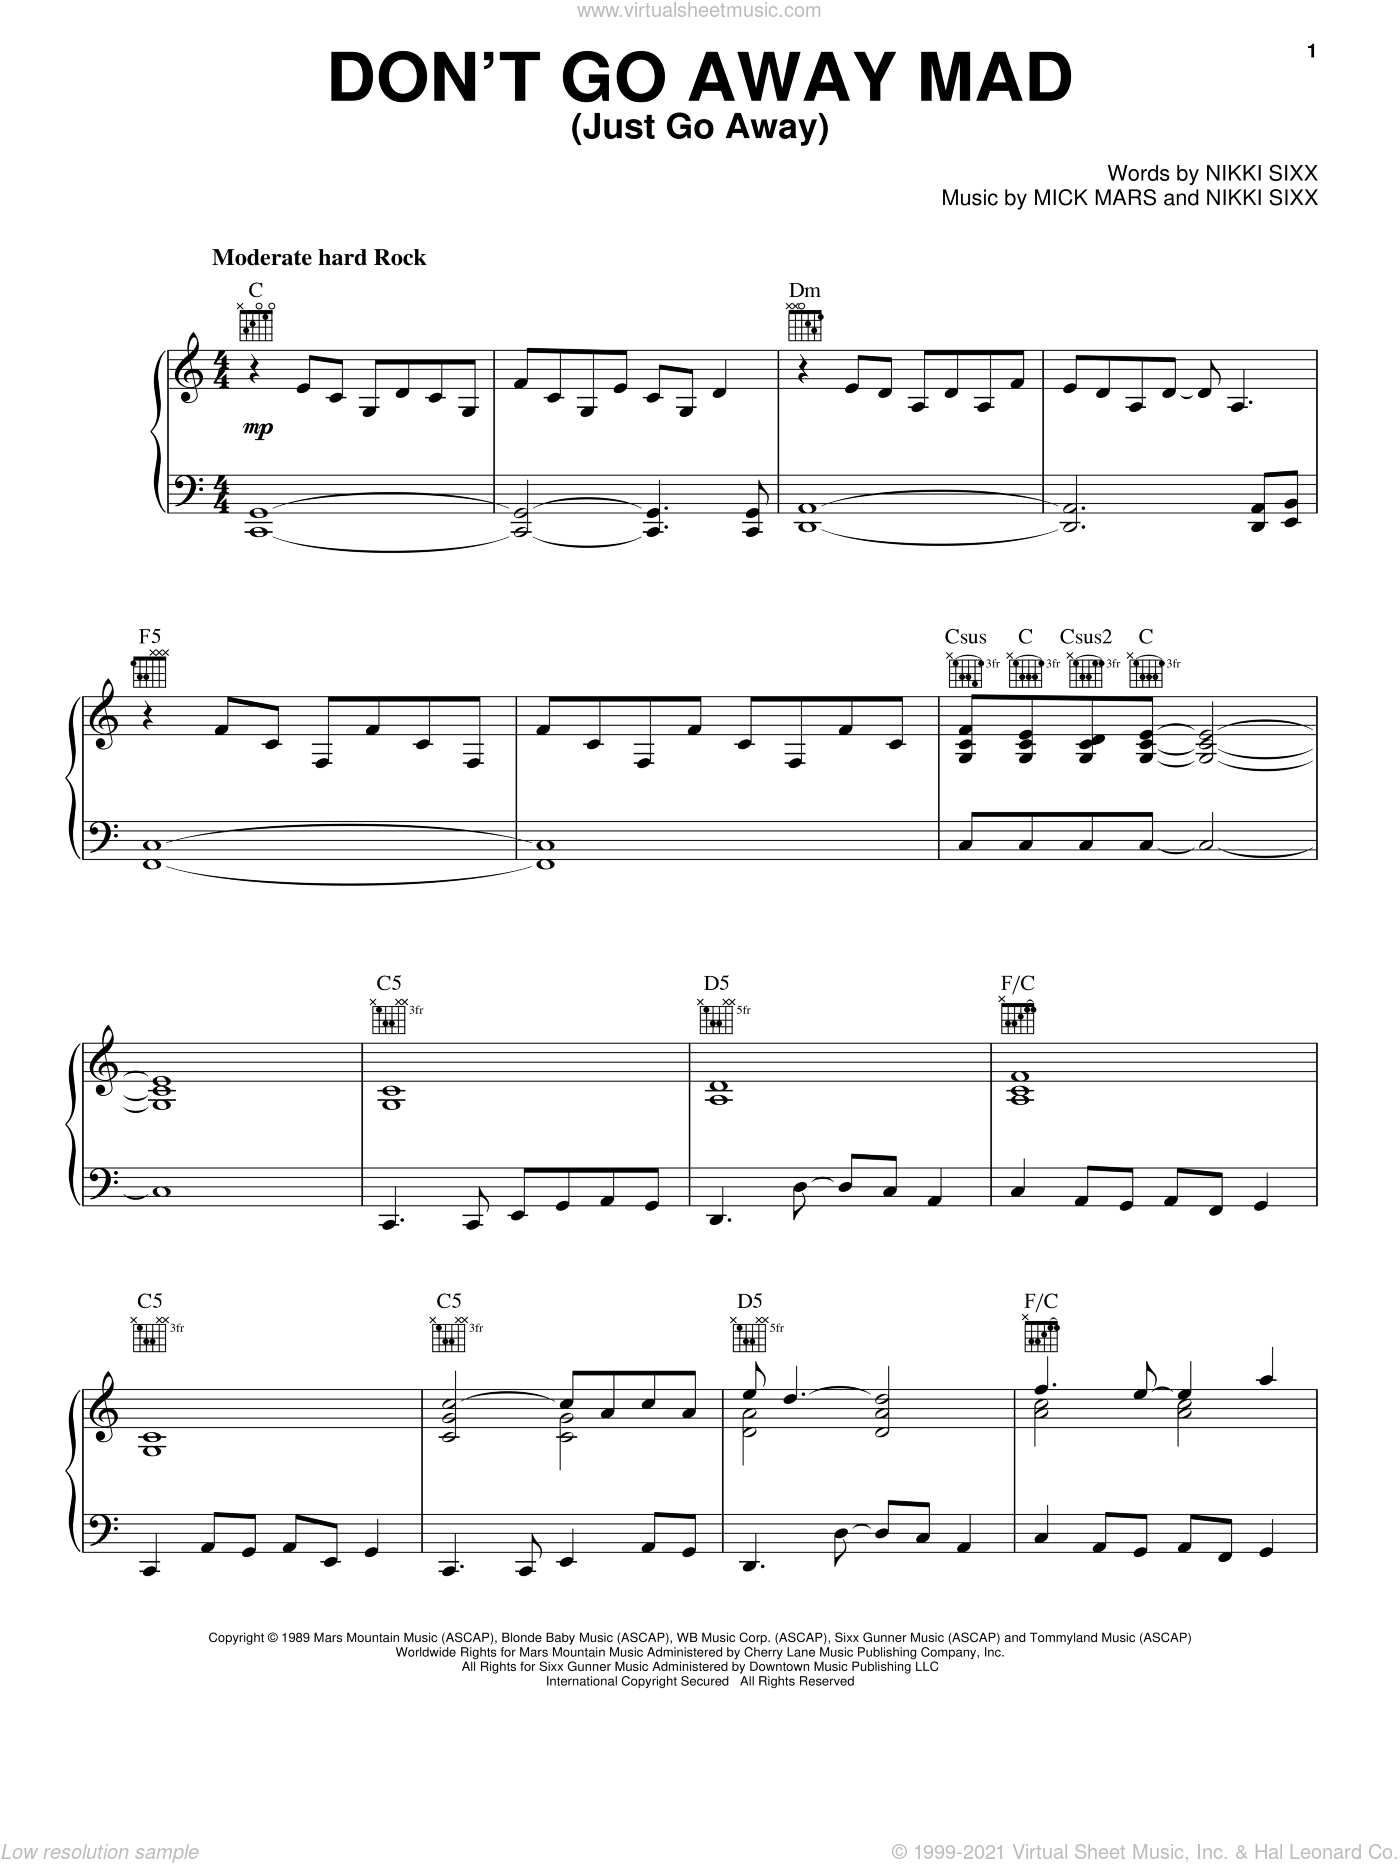 Don't Go Away Mad (Just Go Away) sheet music for voice, piano or guitar by Motley Crue, intermediate skill level